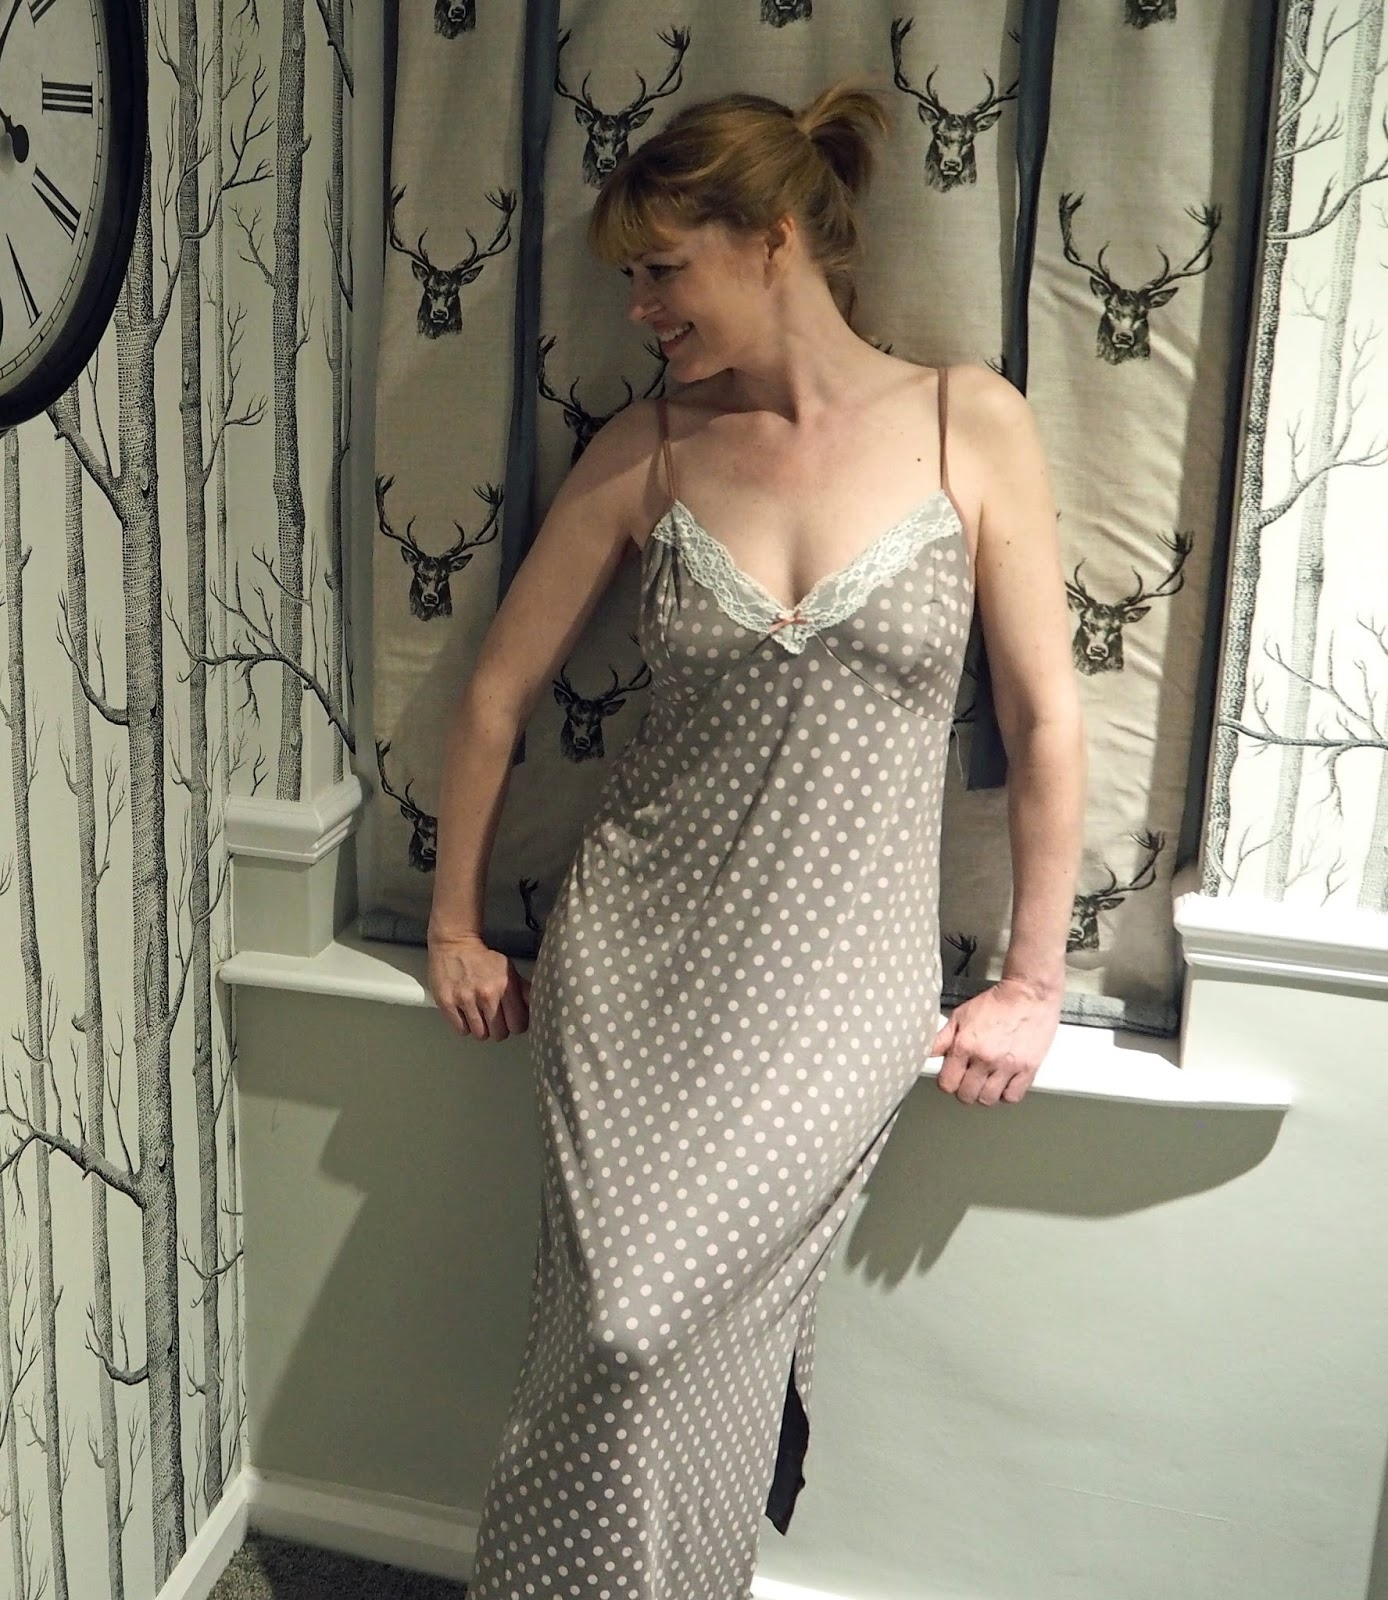 Blackspade noir Olivia spotted nightgown, from UK Lingerie